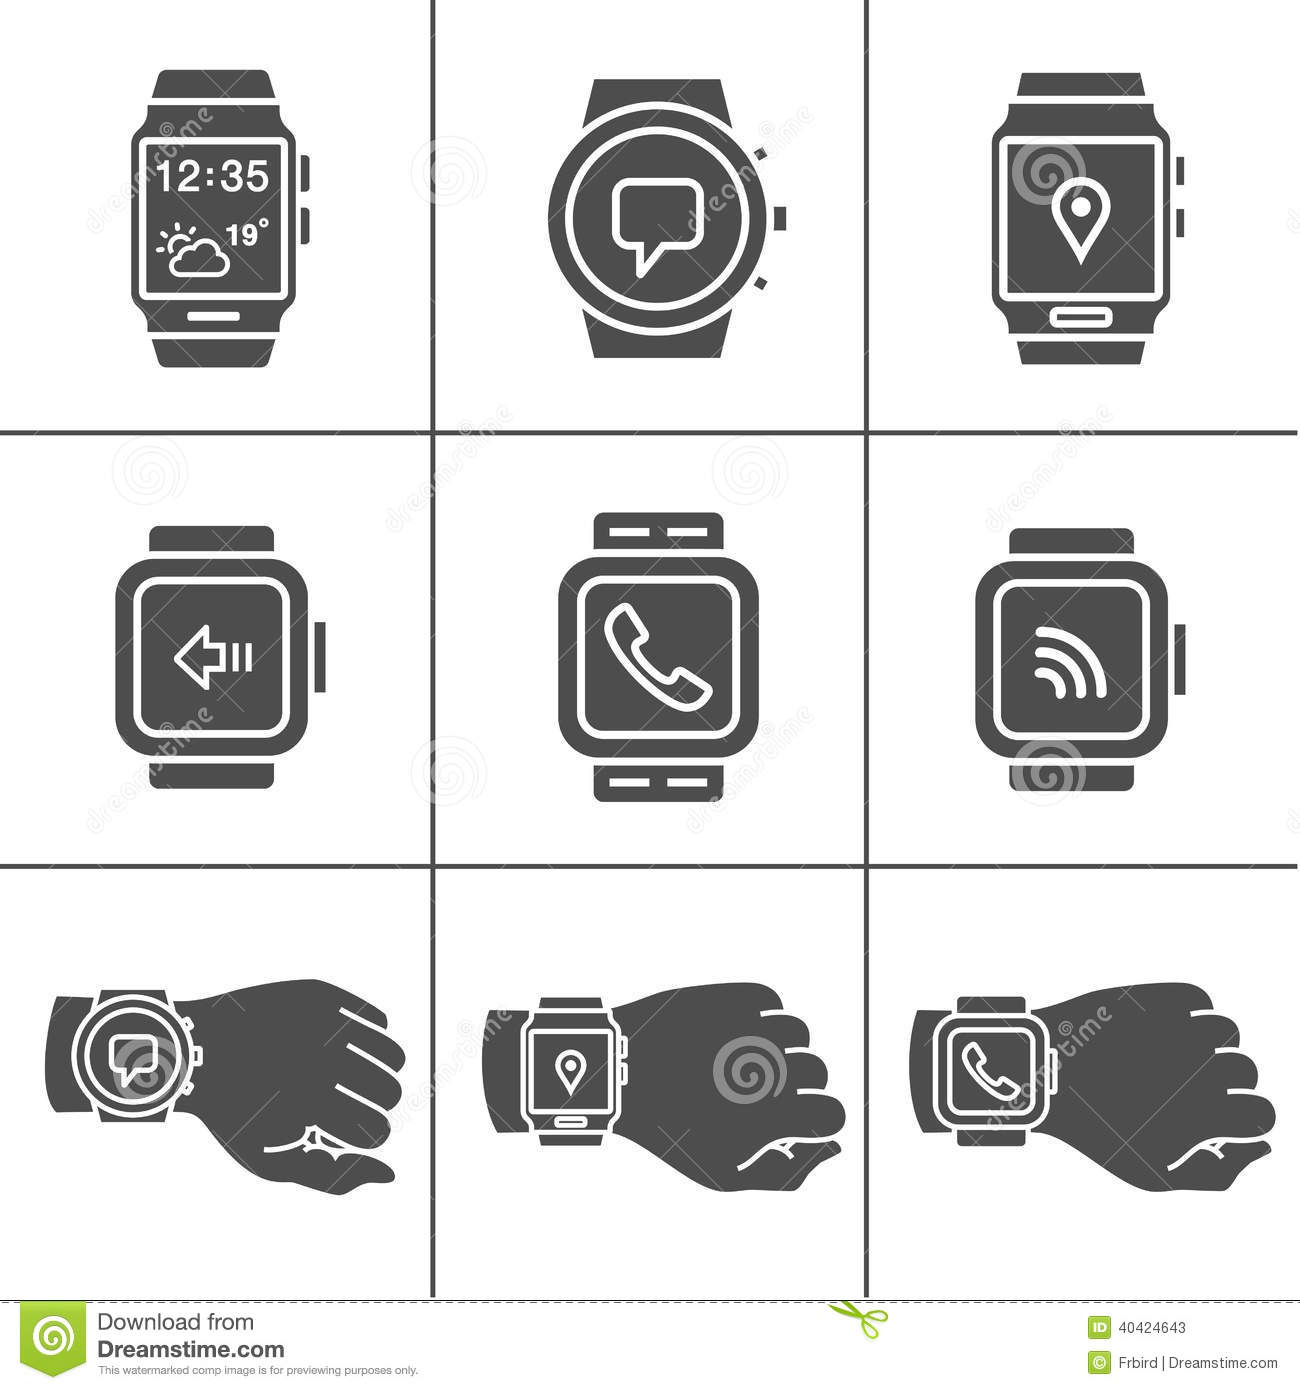 Thumb Down Gesture Icon Isometric 3d Style also Cadlink For Visual Manufacturing also Return To  plex Characters Proposal  izen Reactions as well Thumb Down Gesture Icon Isometric 3d Style besides Shutterstock Eps 112457414. on wrist gesture icons